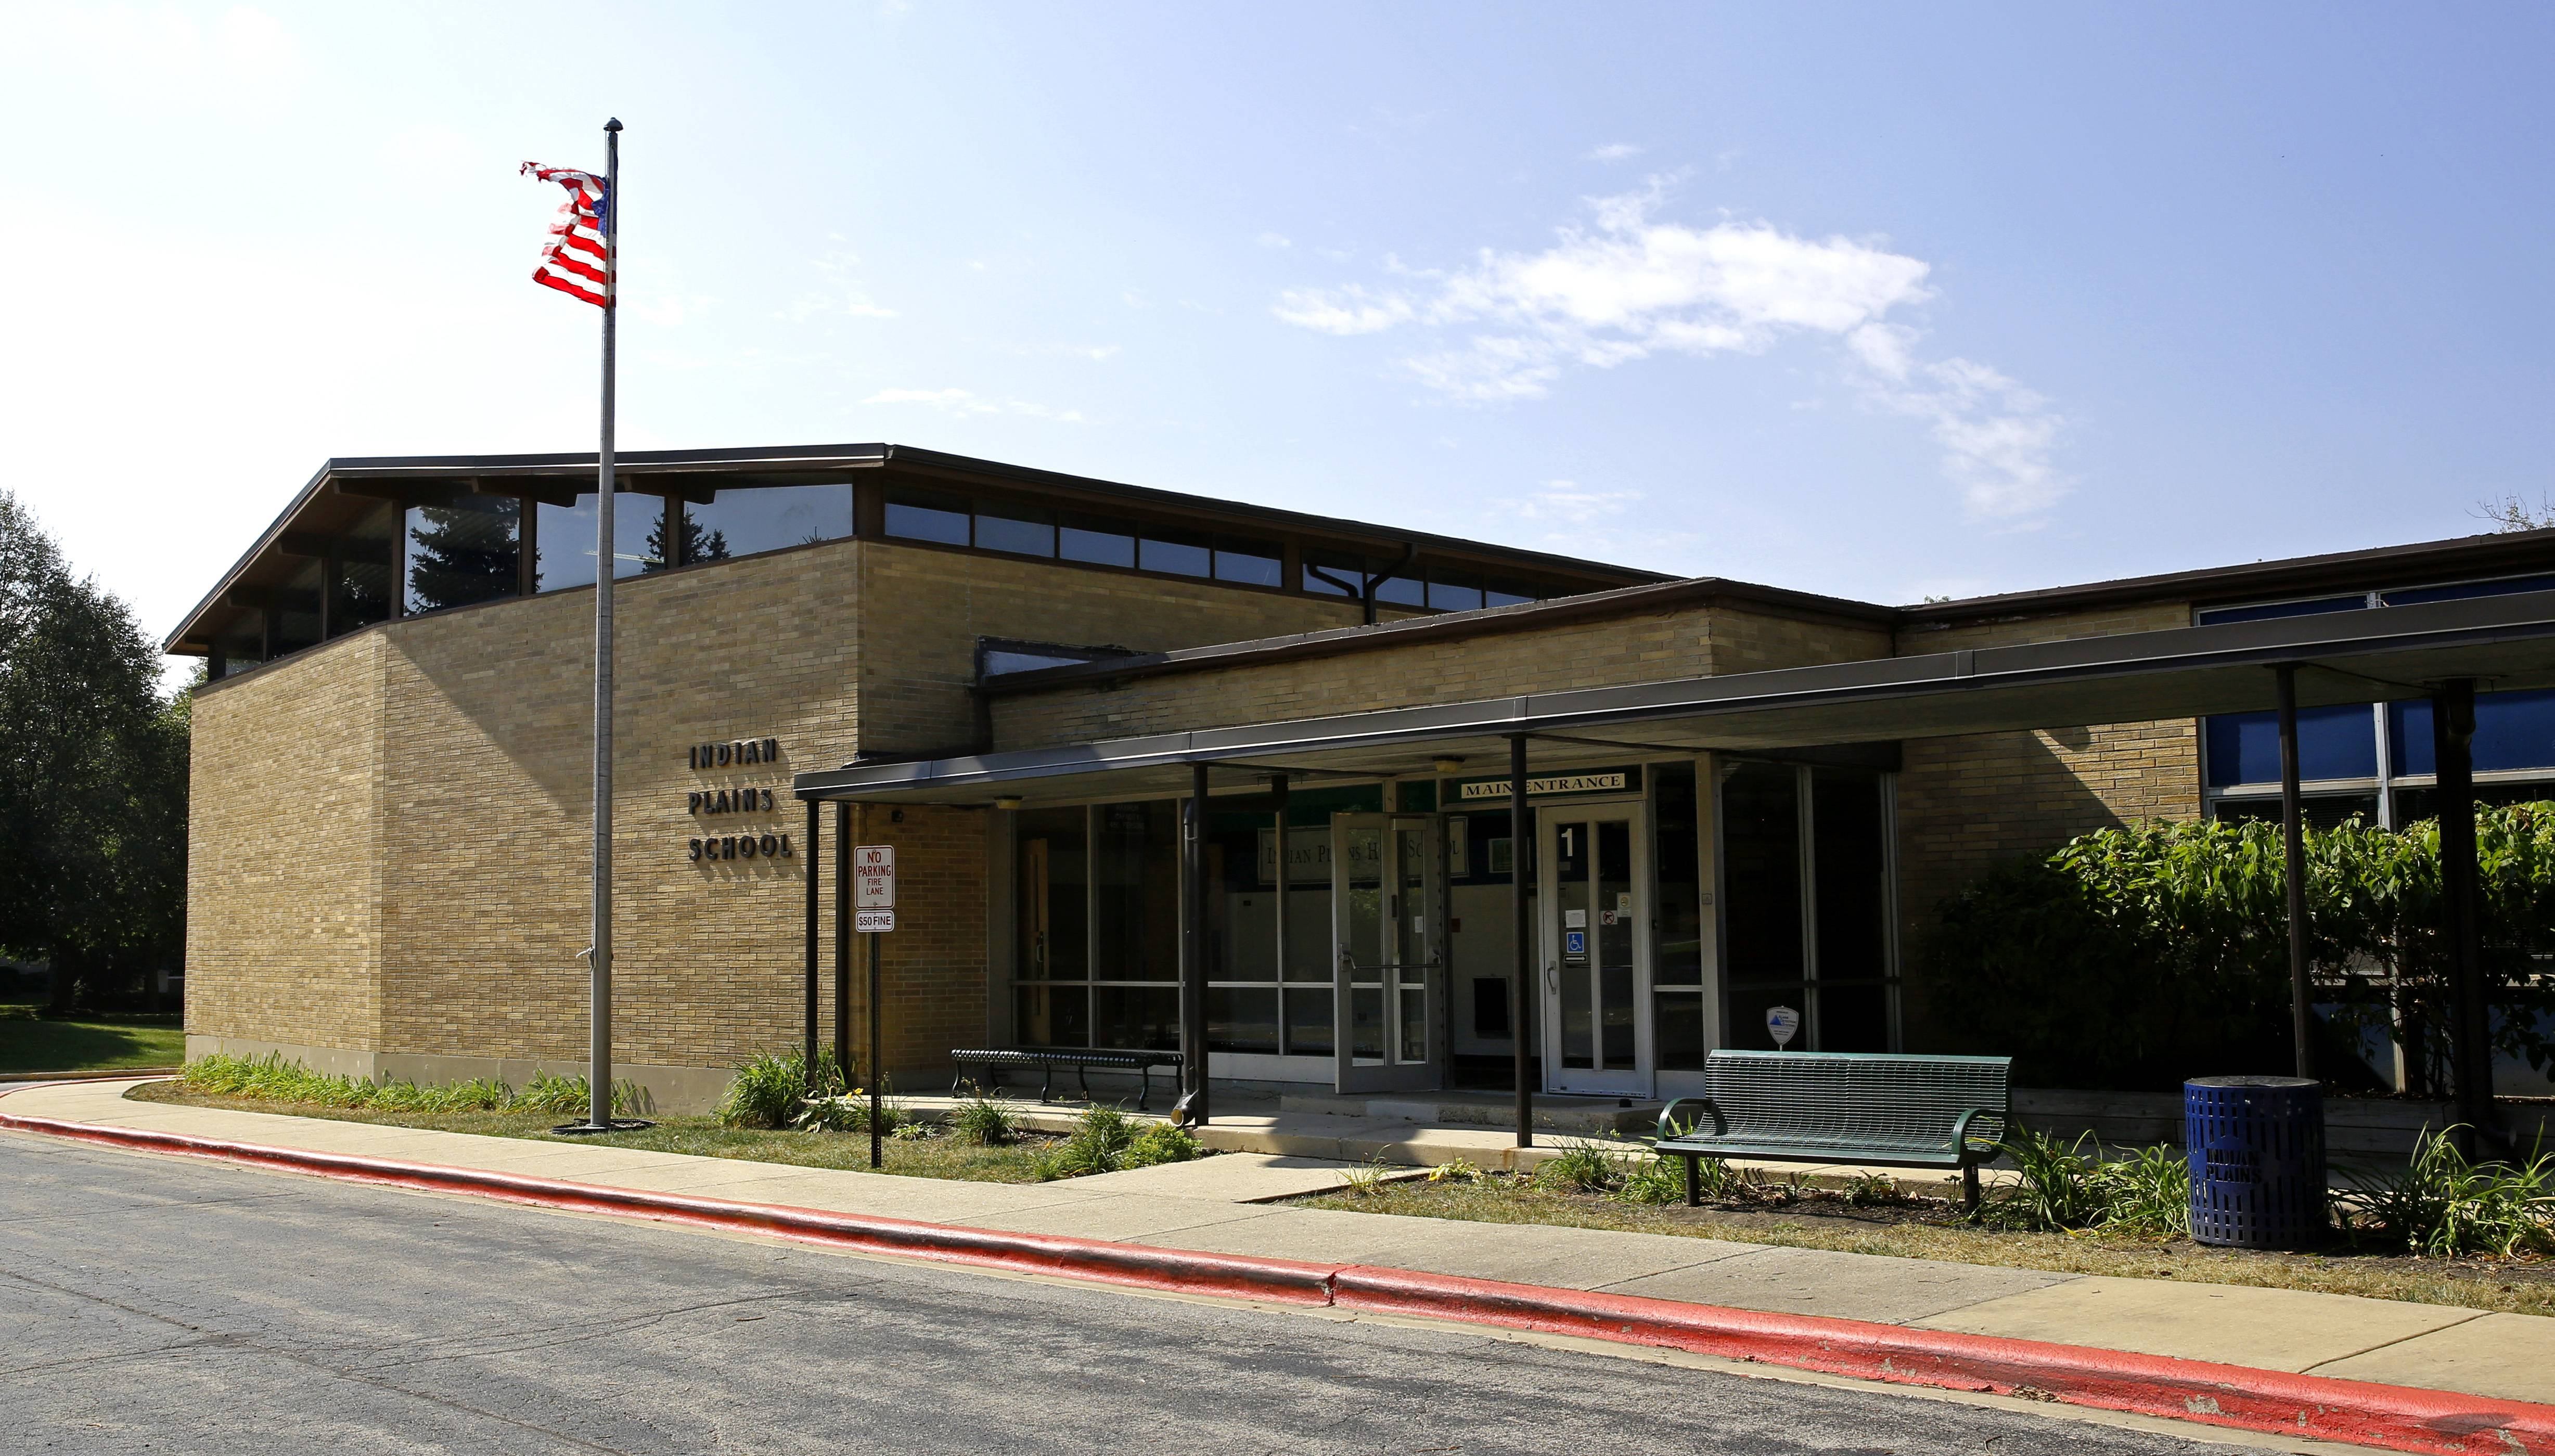 District 204 to tear down Indian Plains school